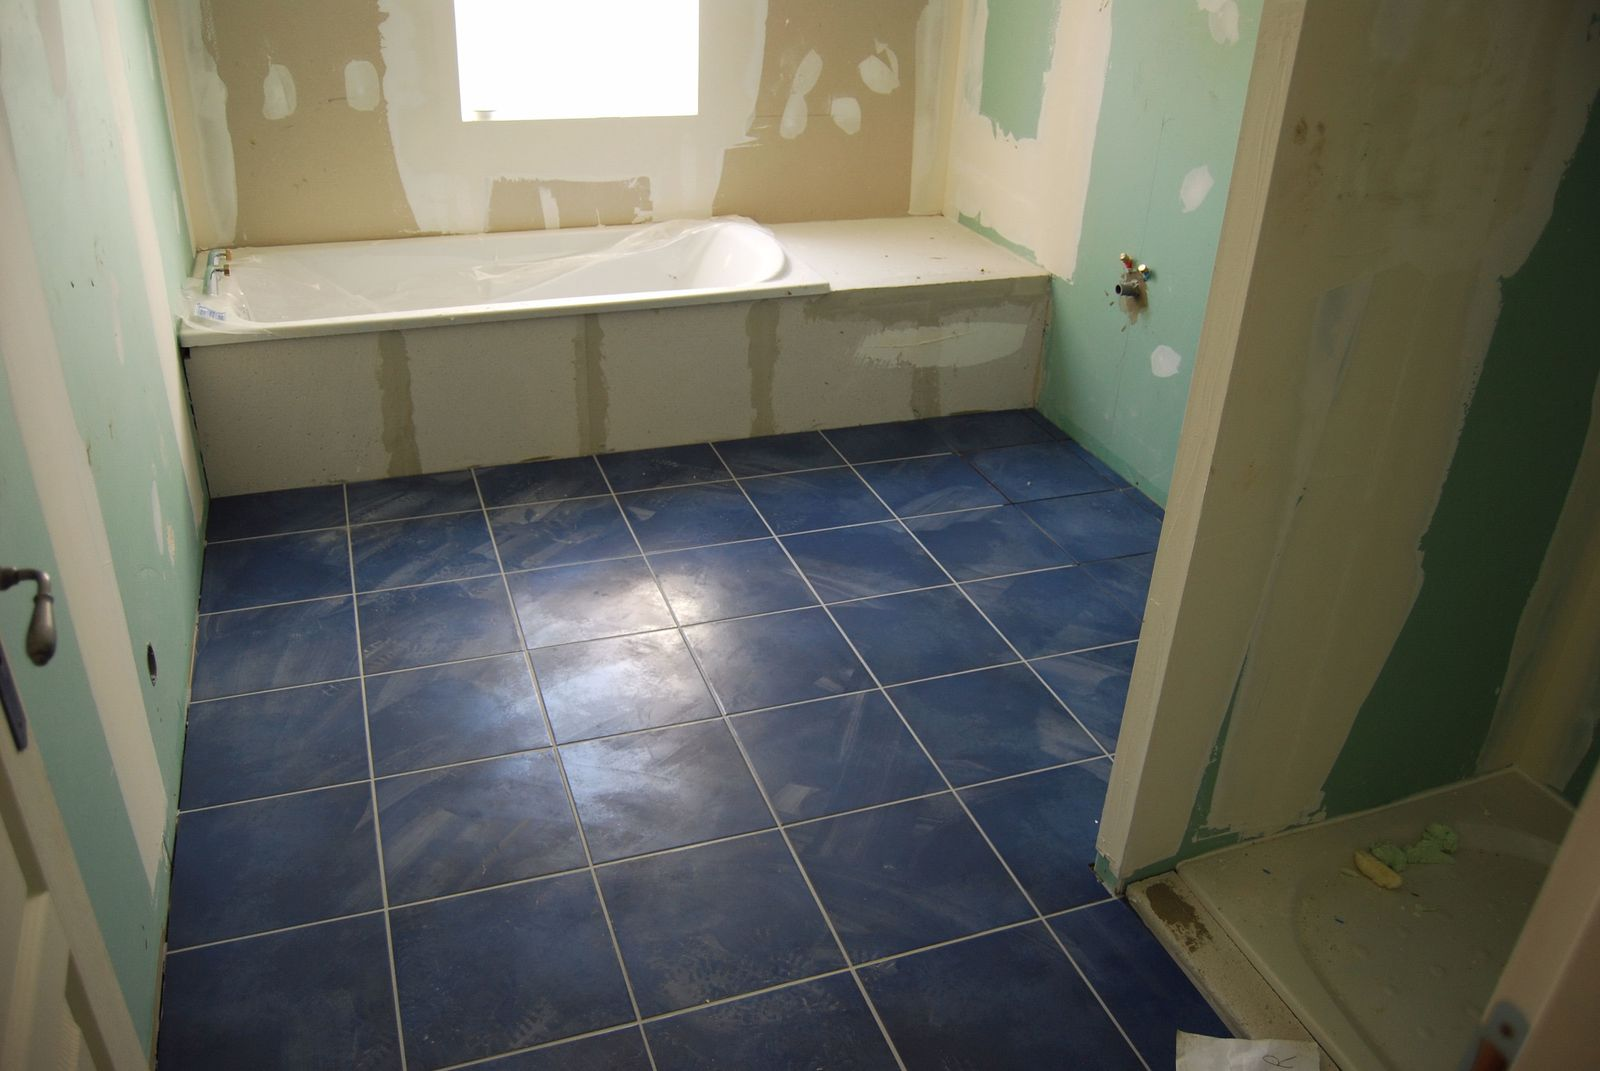 Carrelage pour salle de bain point p for Carrelage cuisine point p